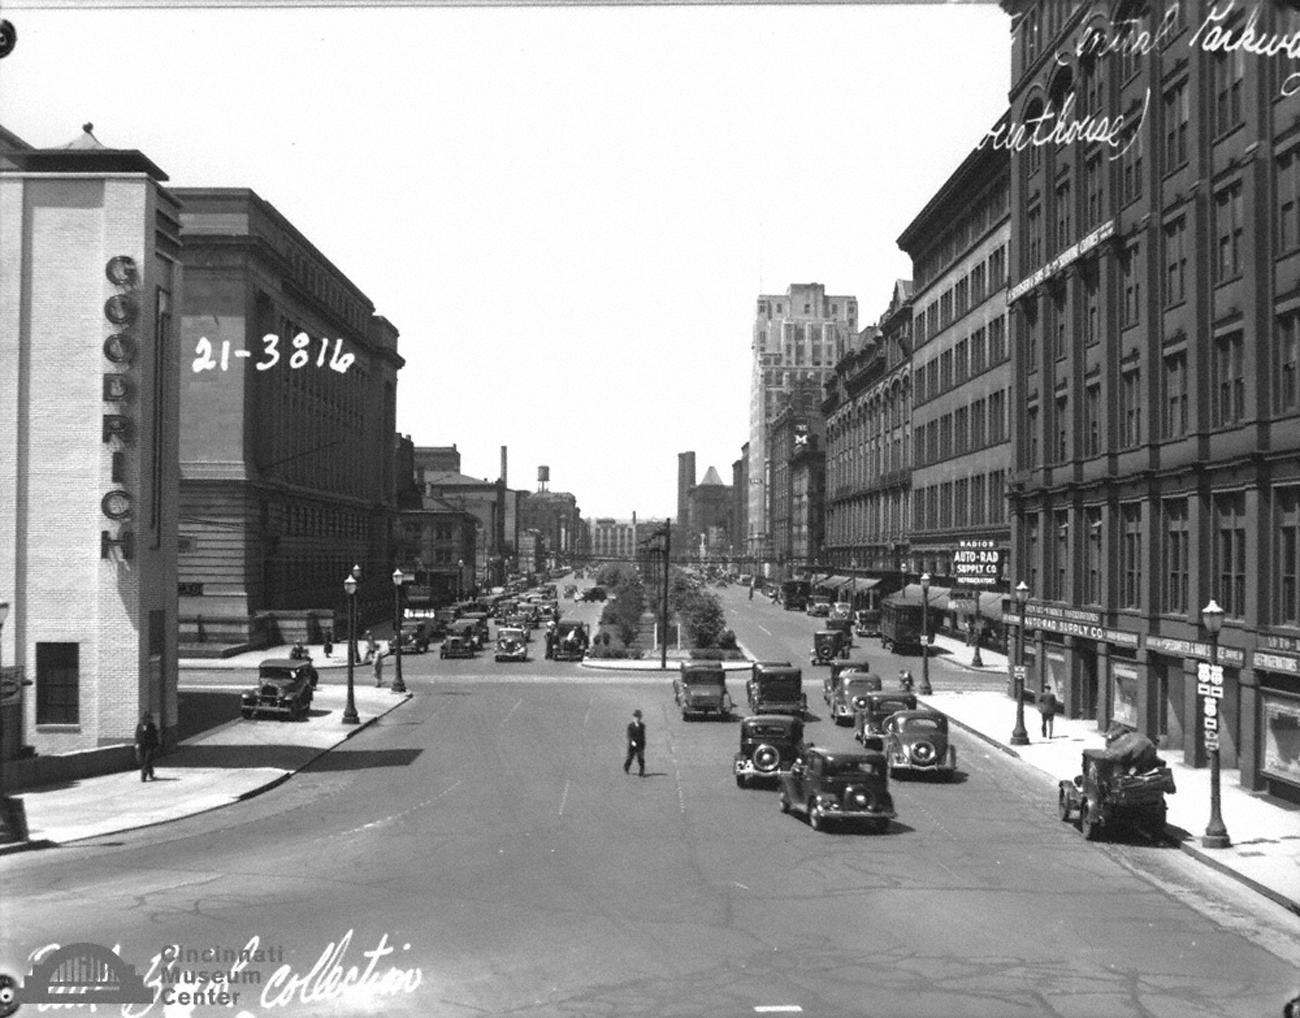 Pictured: Looking west on Central Parkway from Broadway Street during an unknown year / Paul Briol is an iconic Cincinnati photographer who captured the city's buildings, documented the construction of ambitious projects, and captured people in their daily routines and careers from the early 20th Century. He sought to show a true reflection of the world around him, rather than a touched up, glamorized version. His work is a true reflection of Cincinnati's history, which became well-regarded with the publication of his photo book titled City of Rivers and Hills in 1925. / Image: Paul Briol, accessed via the Cincinnati Museum Center History Library and Archives{ }// Published: 2.16.19